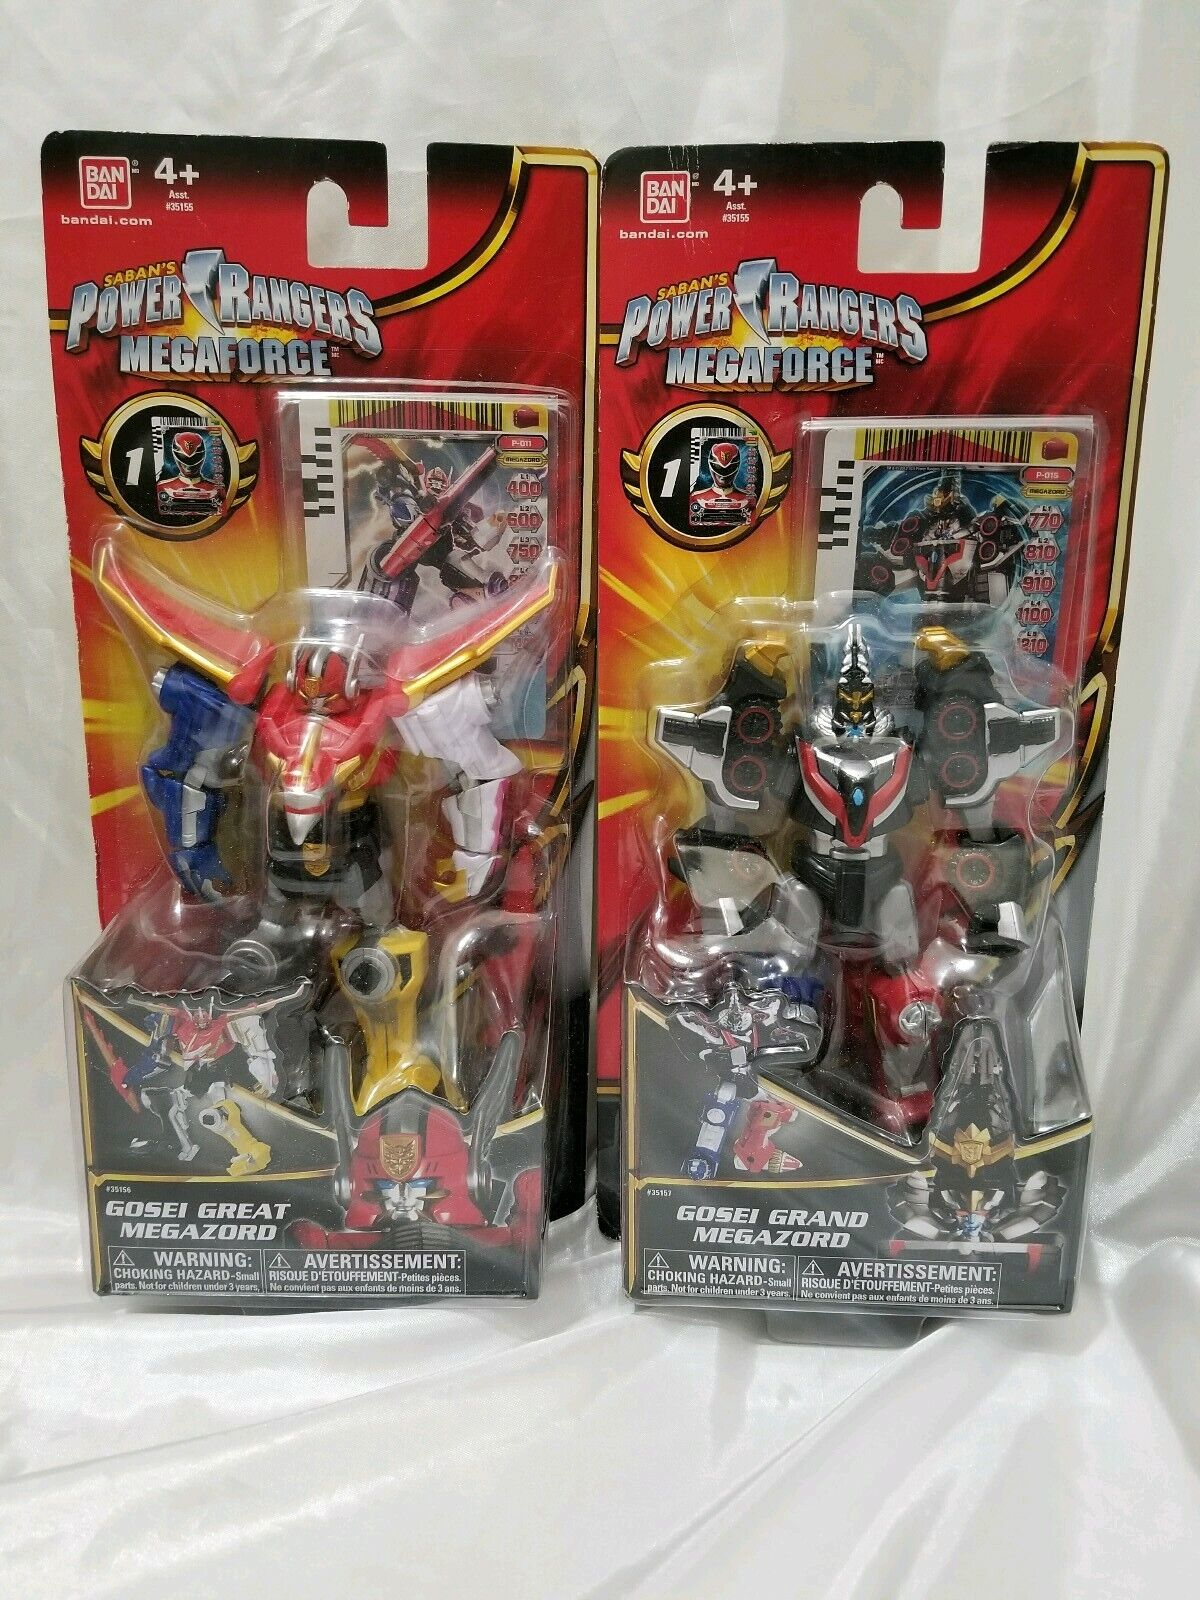 Power Rangers Megaforce 5.5  Gosei Grand Megazord & Gosei Great Megazord Figures